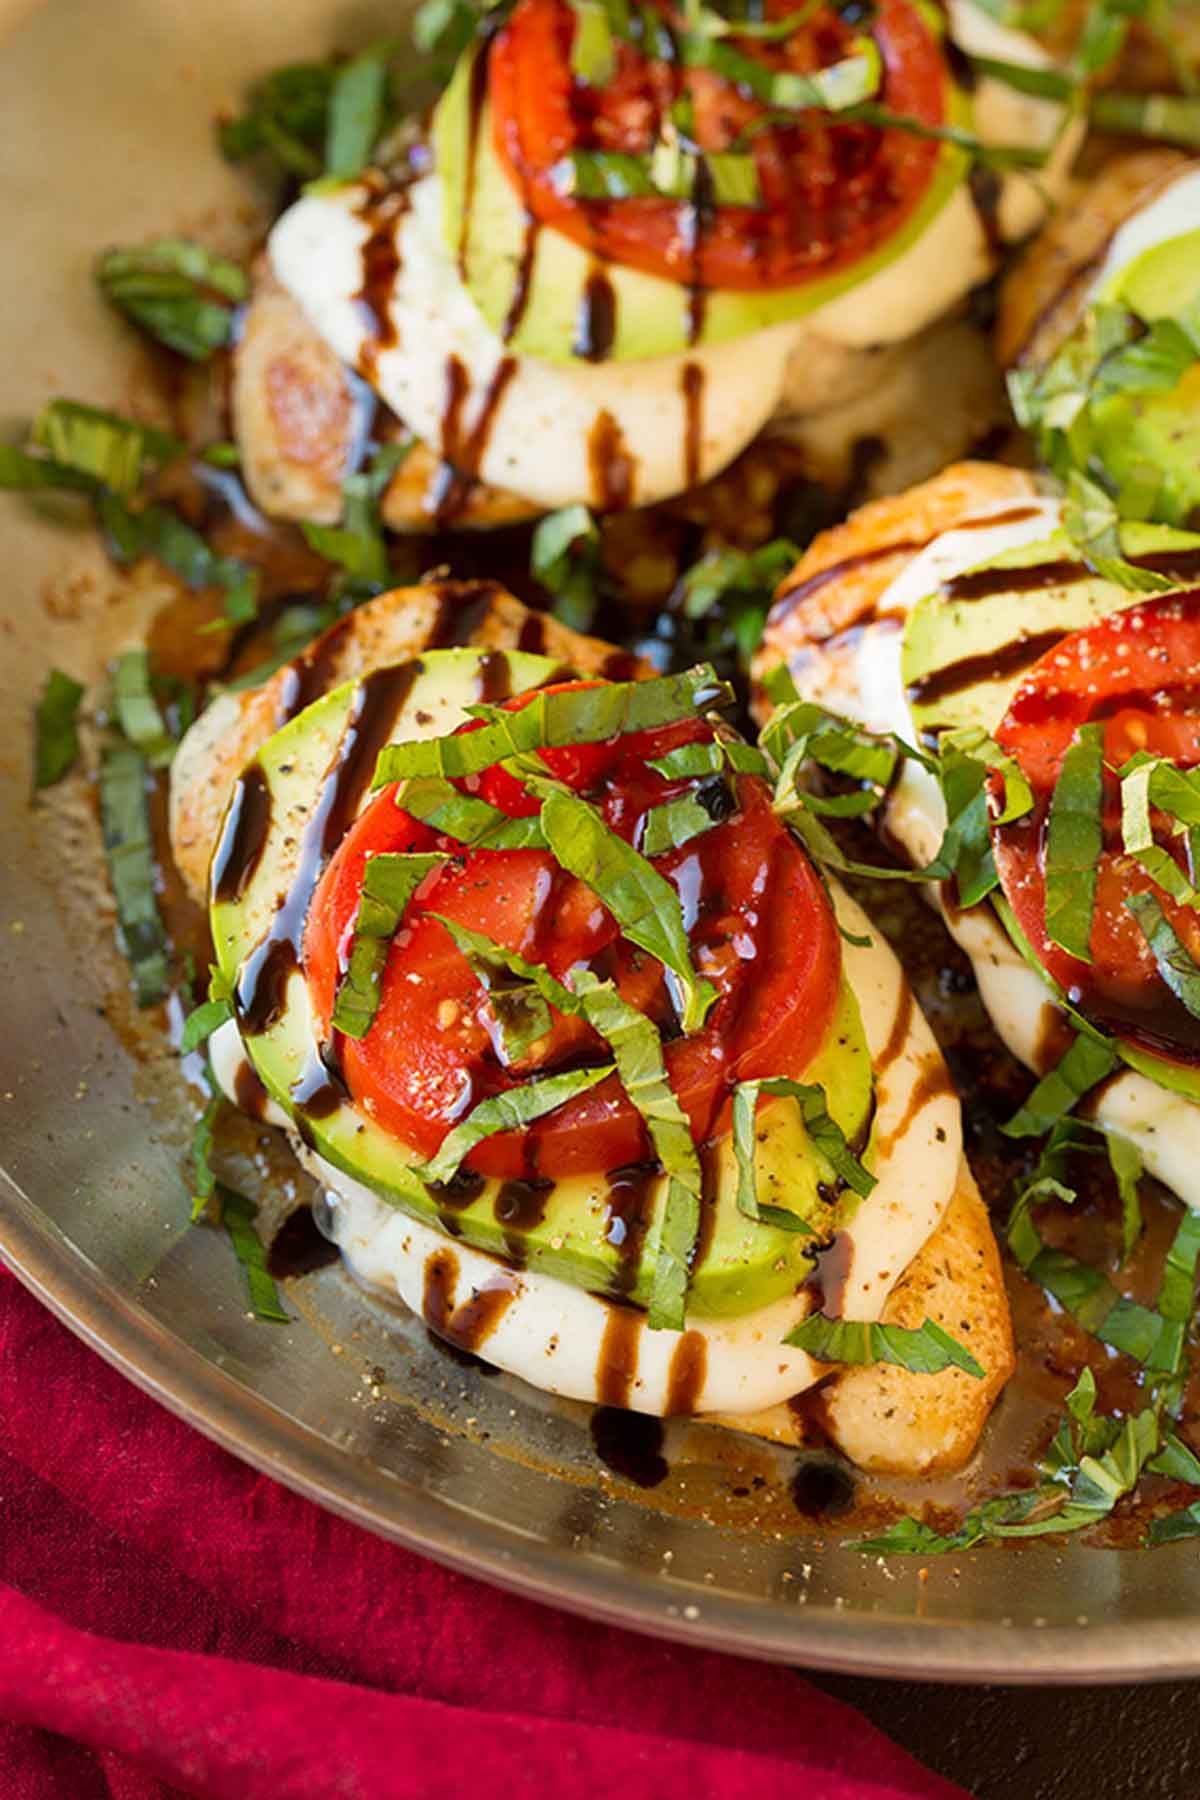 Avocado Recipes to Try if Youre Bored With Toast forecasting